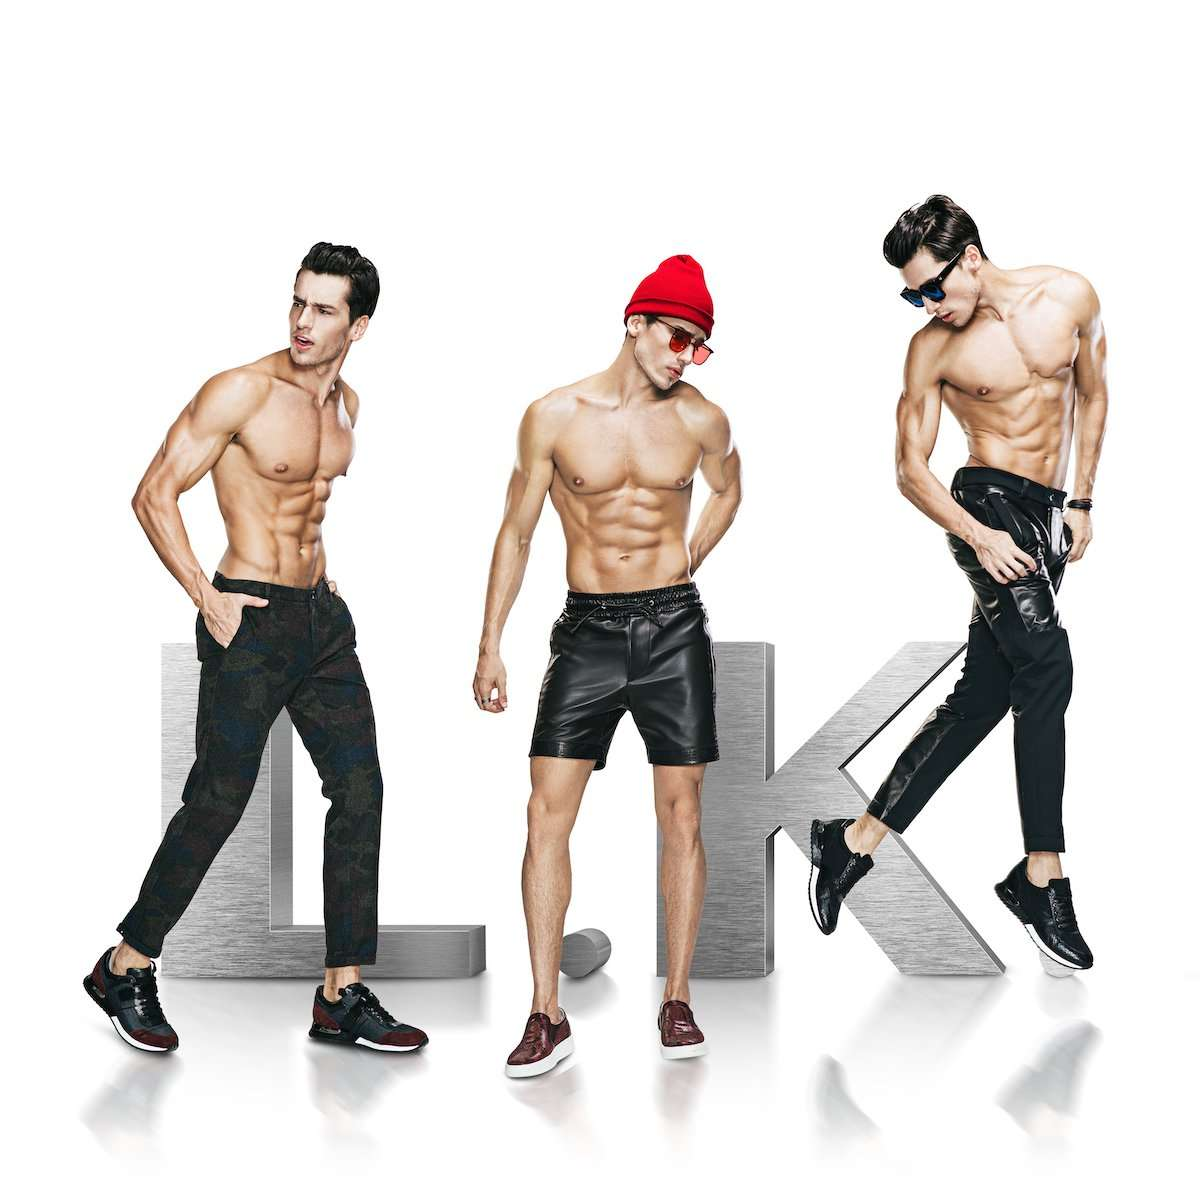 Studio photographs of male model wearing LKDL clothing brand, by AsiaPhoto photographer Lance Lee.